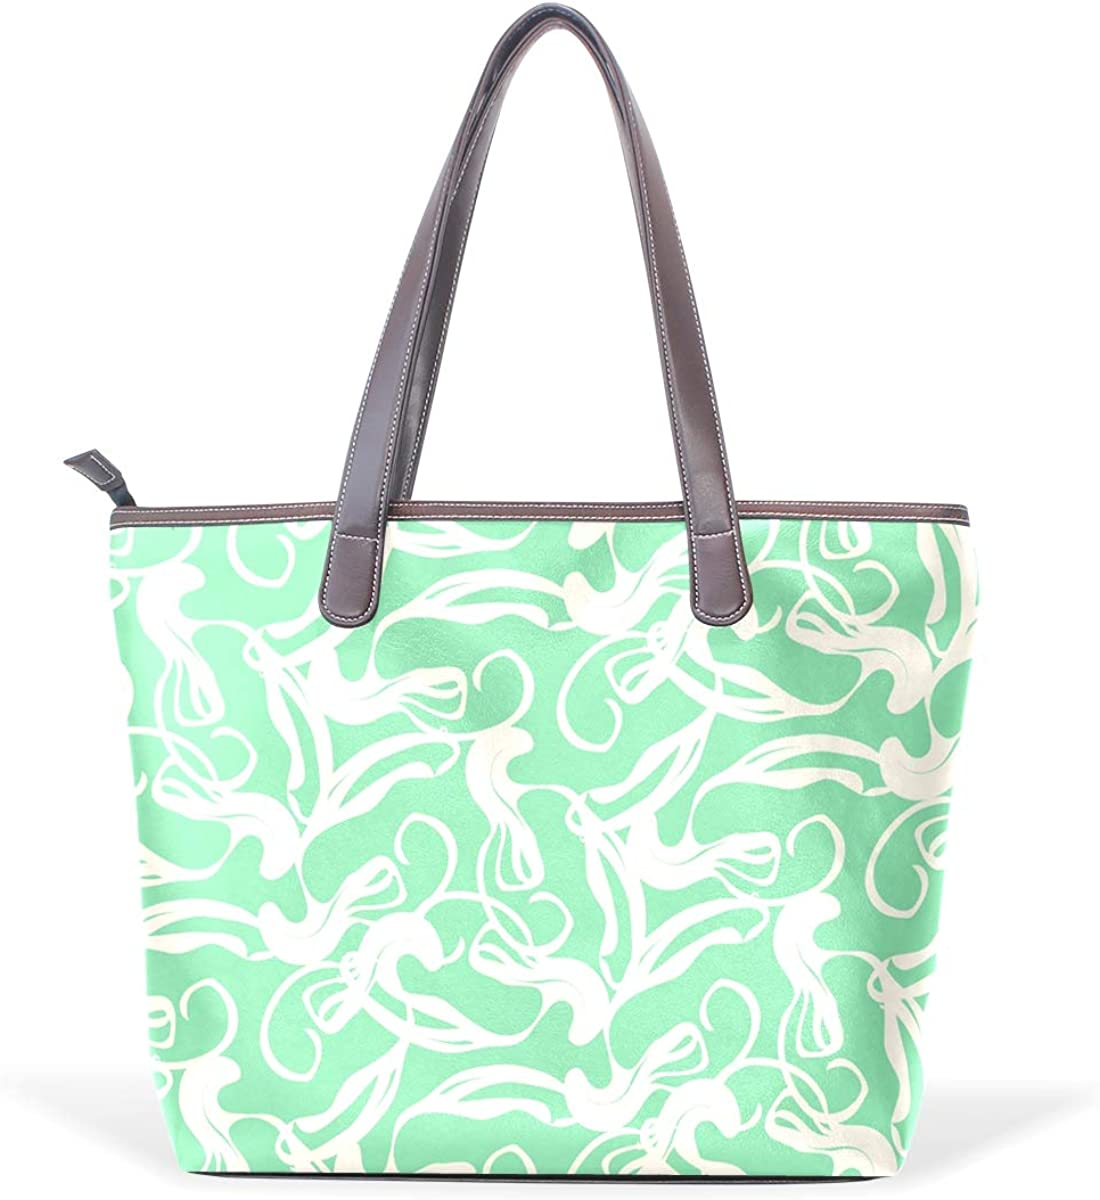 Green Marble PatternWomens Vintage Leather Tote Urban Style Satchel Tote